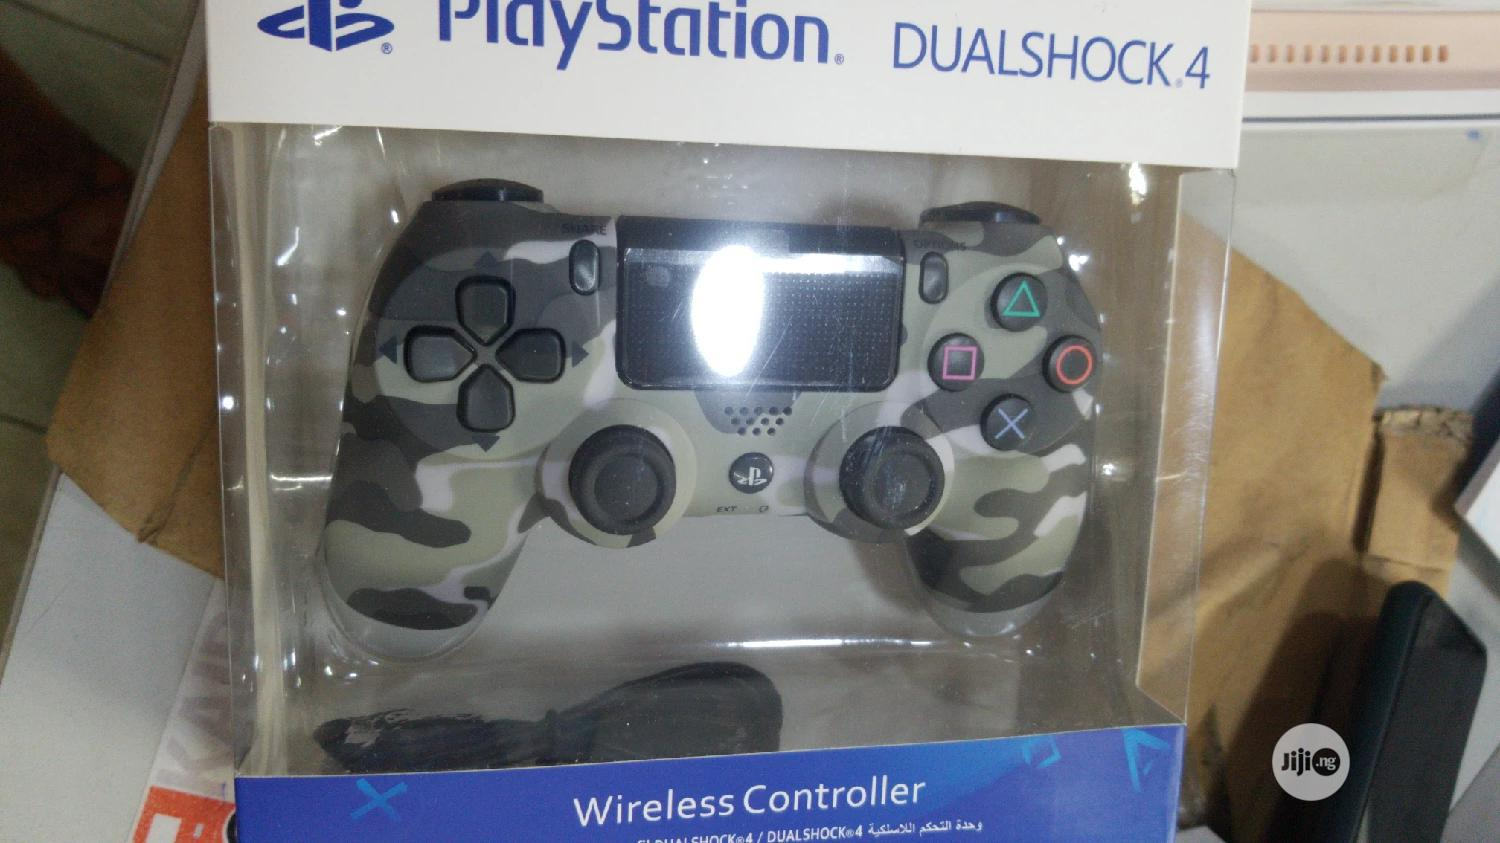 PS4 Wireless Gamepad